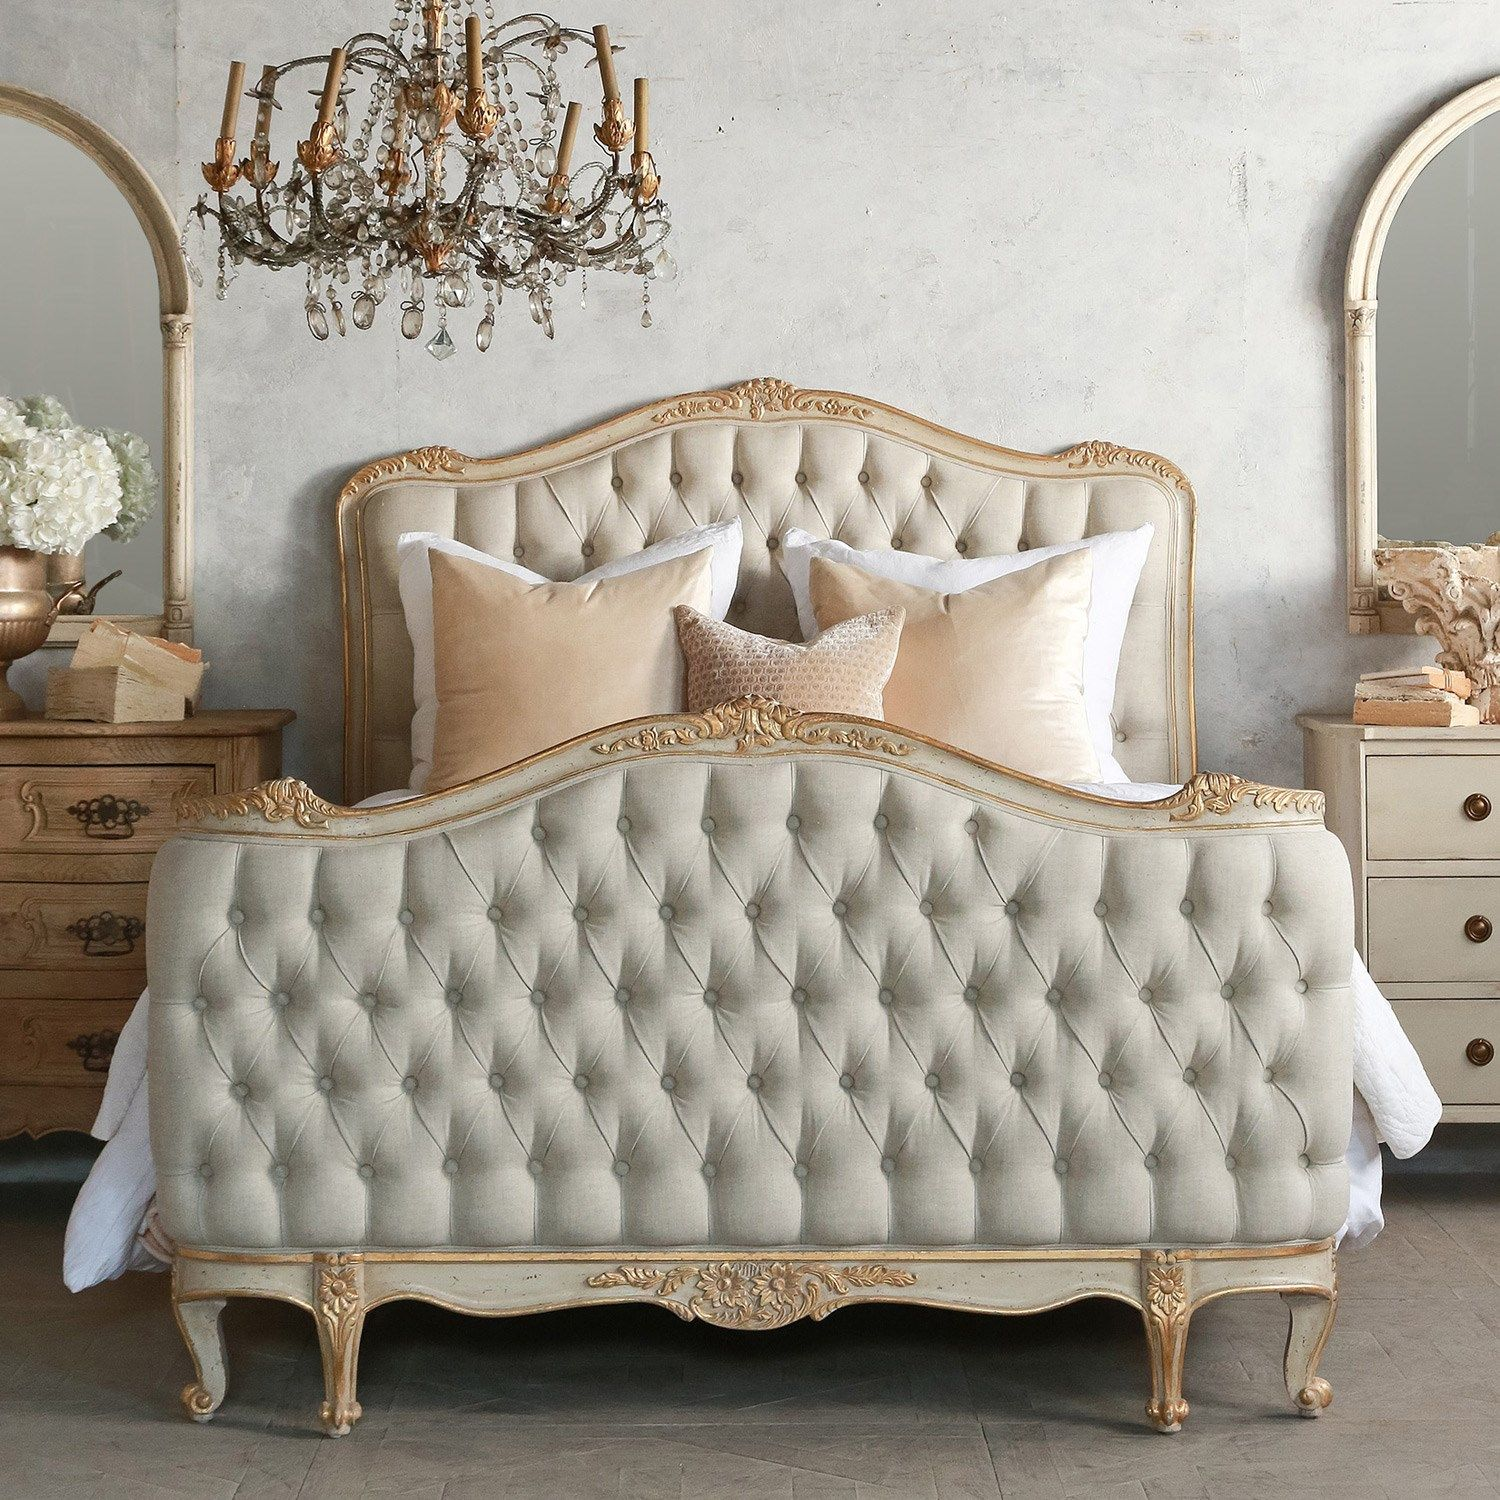 Eloquence® Sophia Tufted Bed, Made In The Classic Louis XV Corbeille Style.  Beautifully Hand Finished In Our New Antique Gold Two Tone Finish With Fog  Linen ... Design